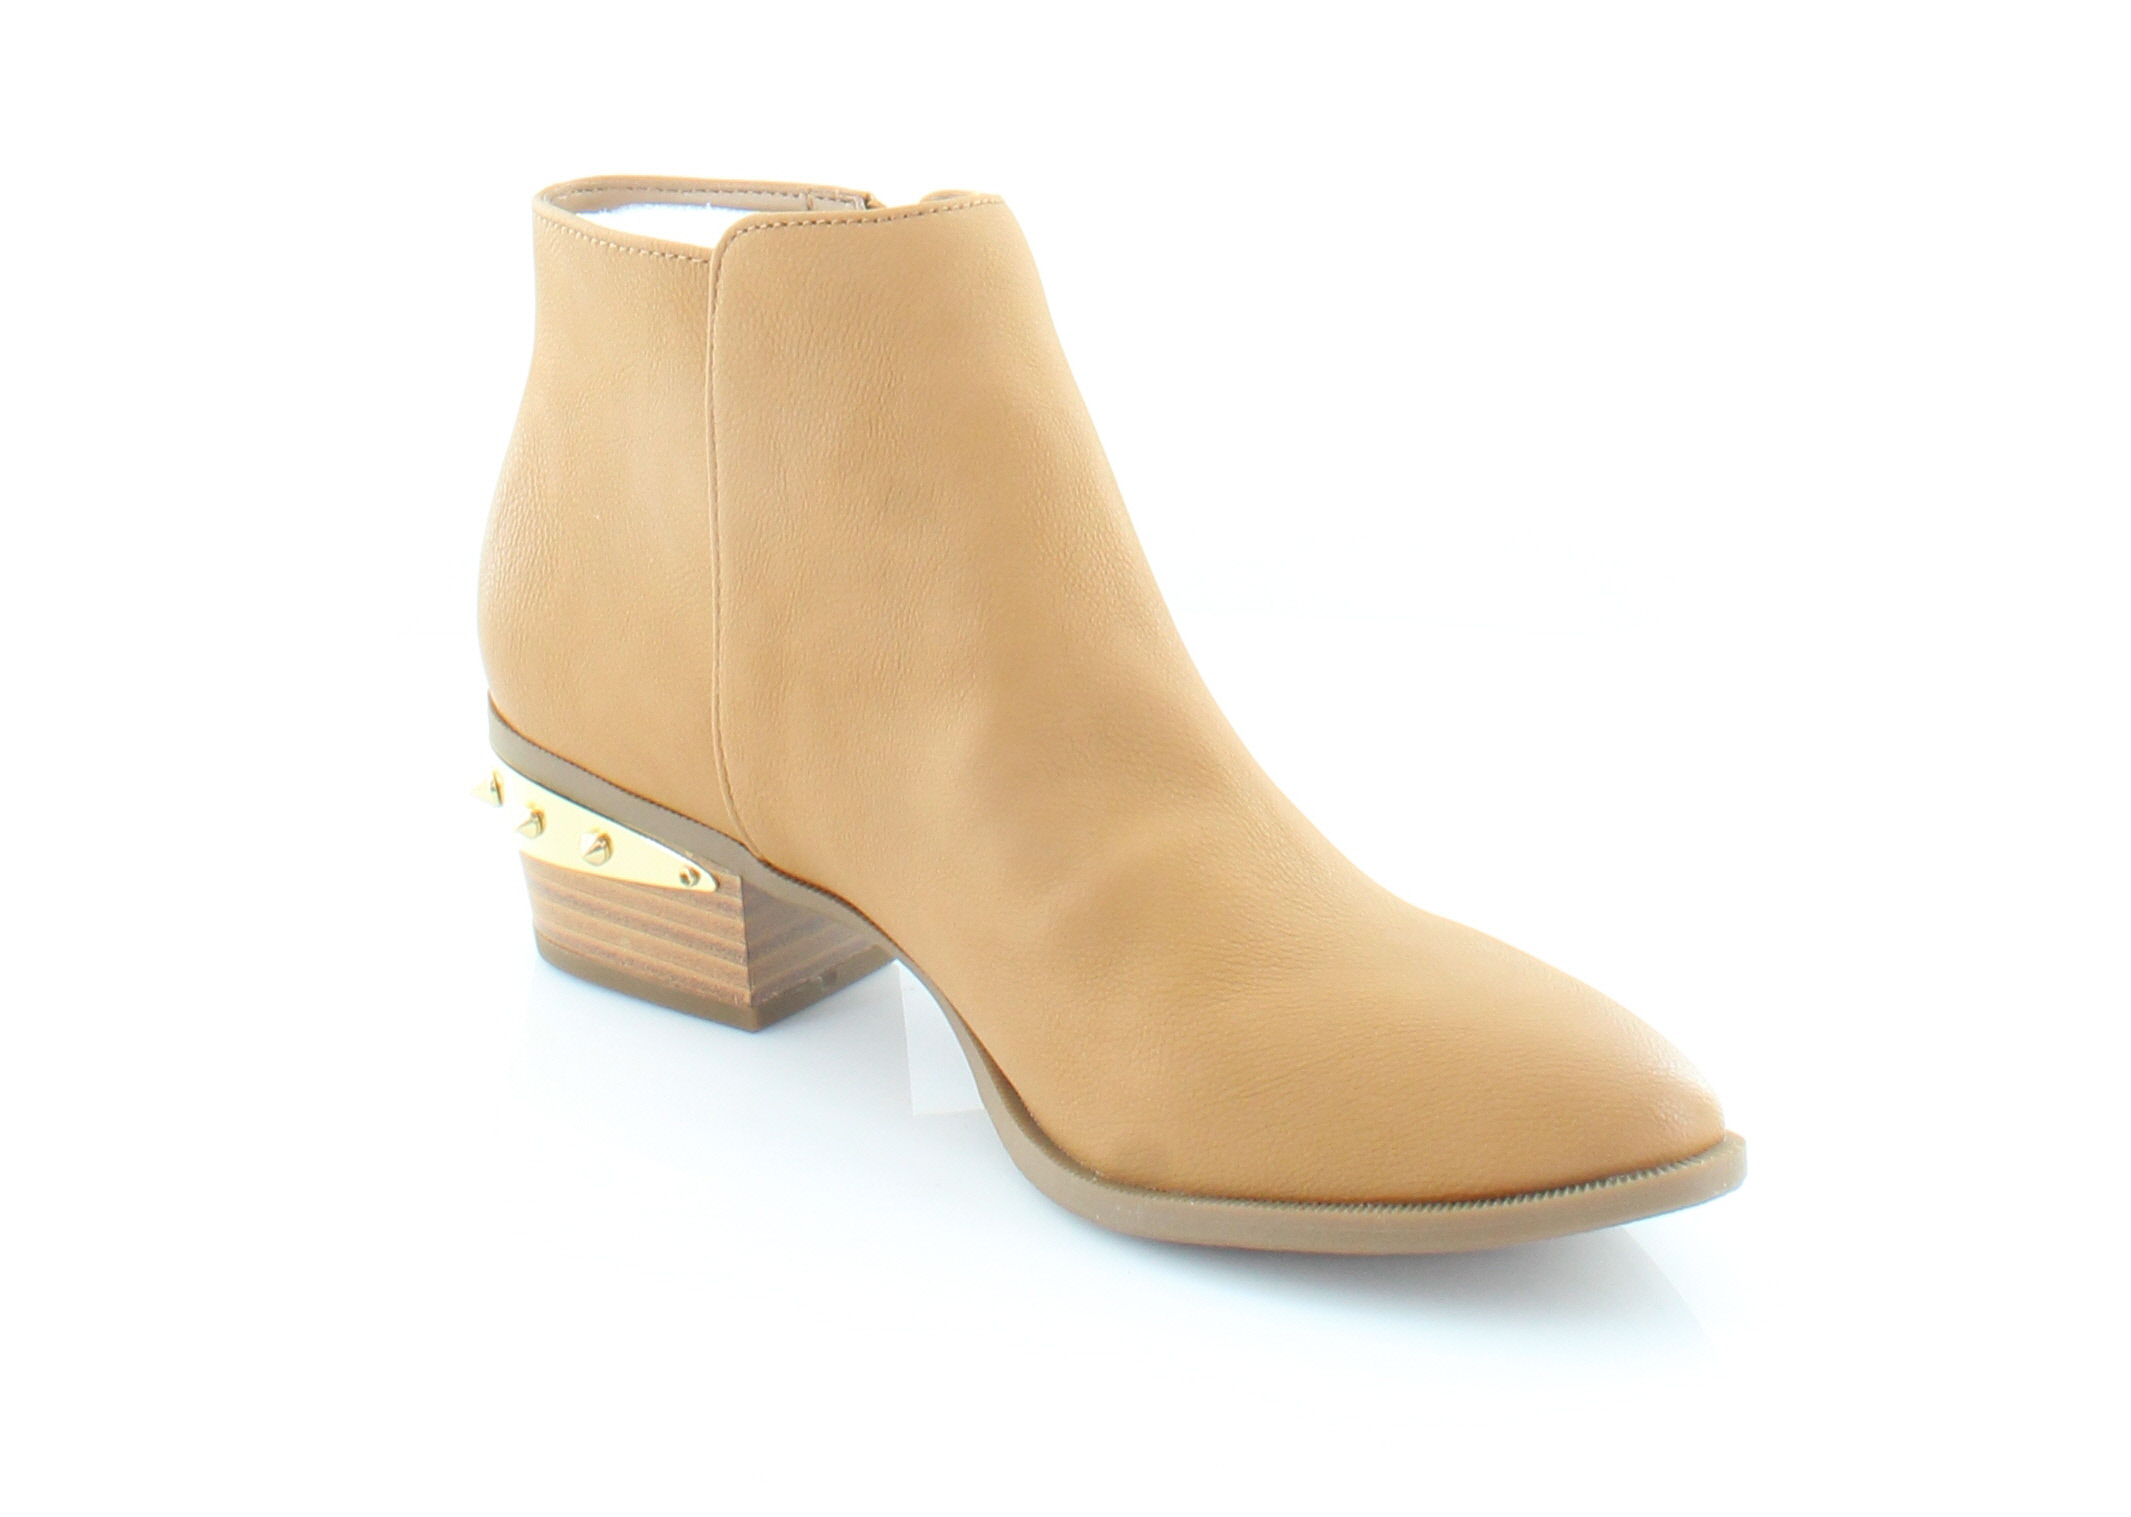 9092faaa9a686b Circus by Sam Edelman Holt Brown Womens Shoes Size 7.5 M Boots MSRP ...